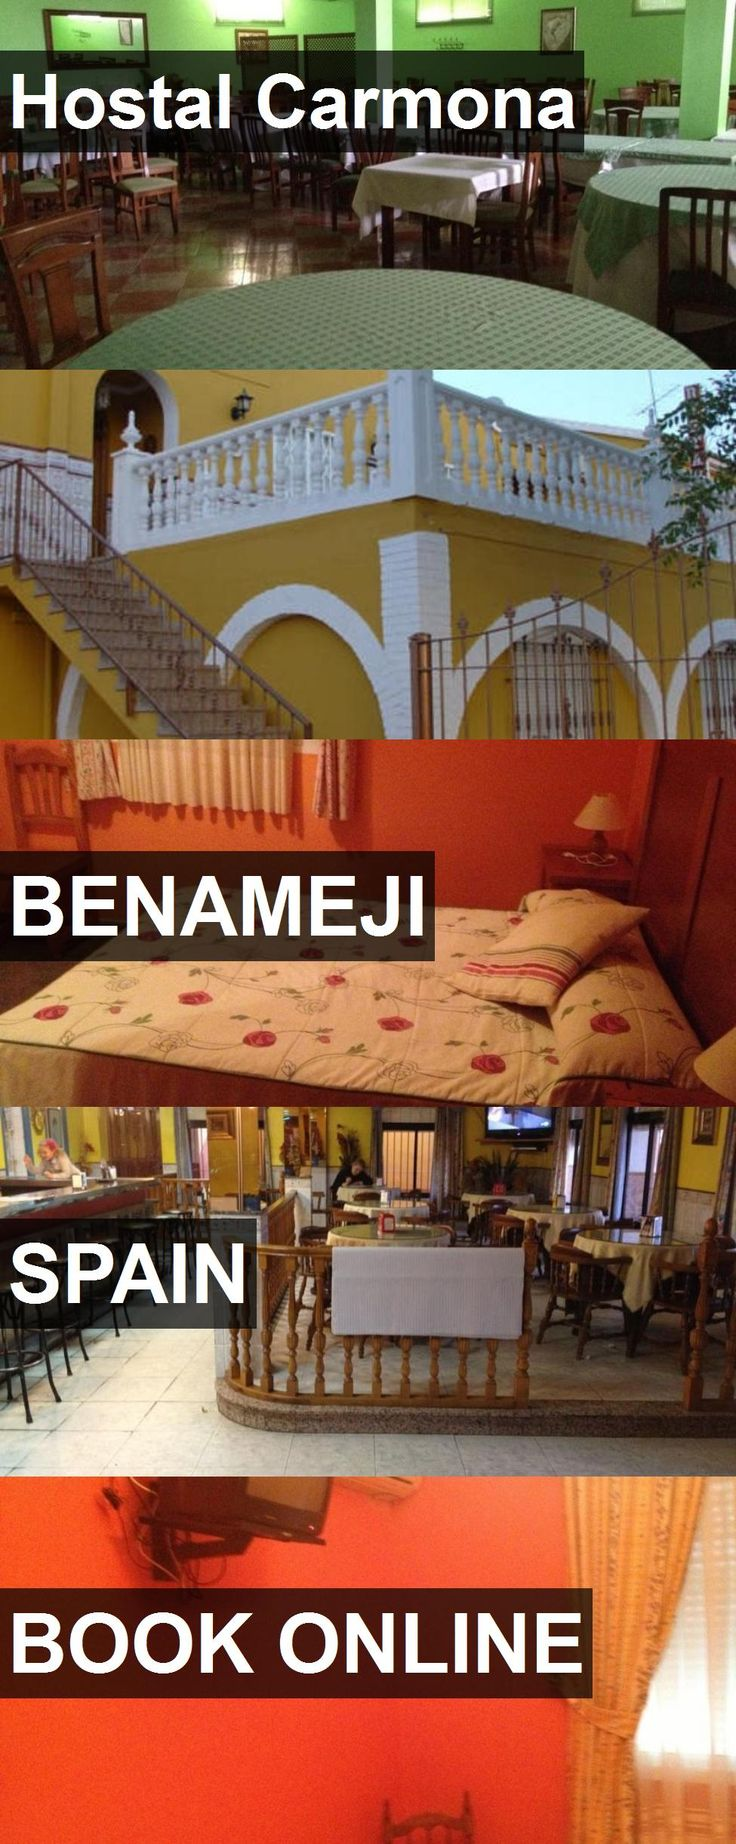 Hotel Hostal Carmona in Benameji, Spain. For more information, photos, reviews and best prices please follow the link. #Spain #Benameji #hotel #travel #vacation